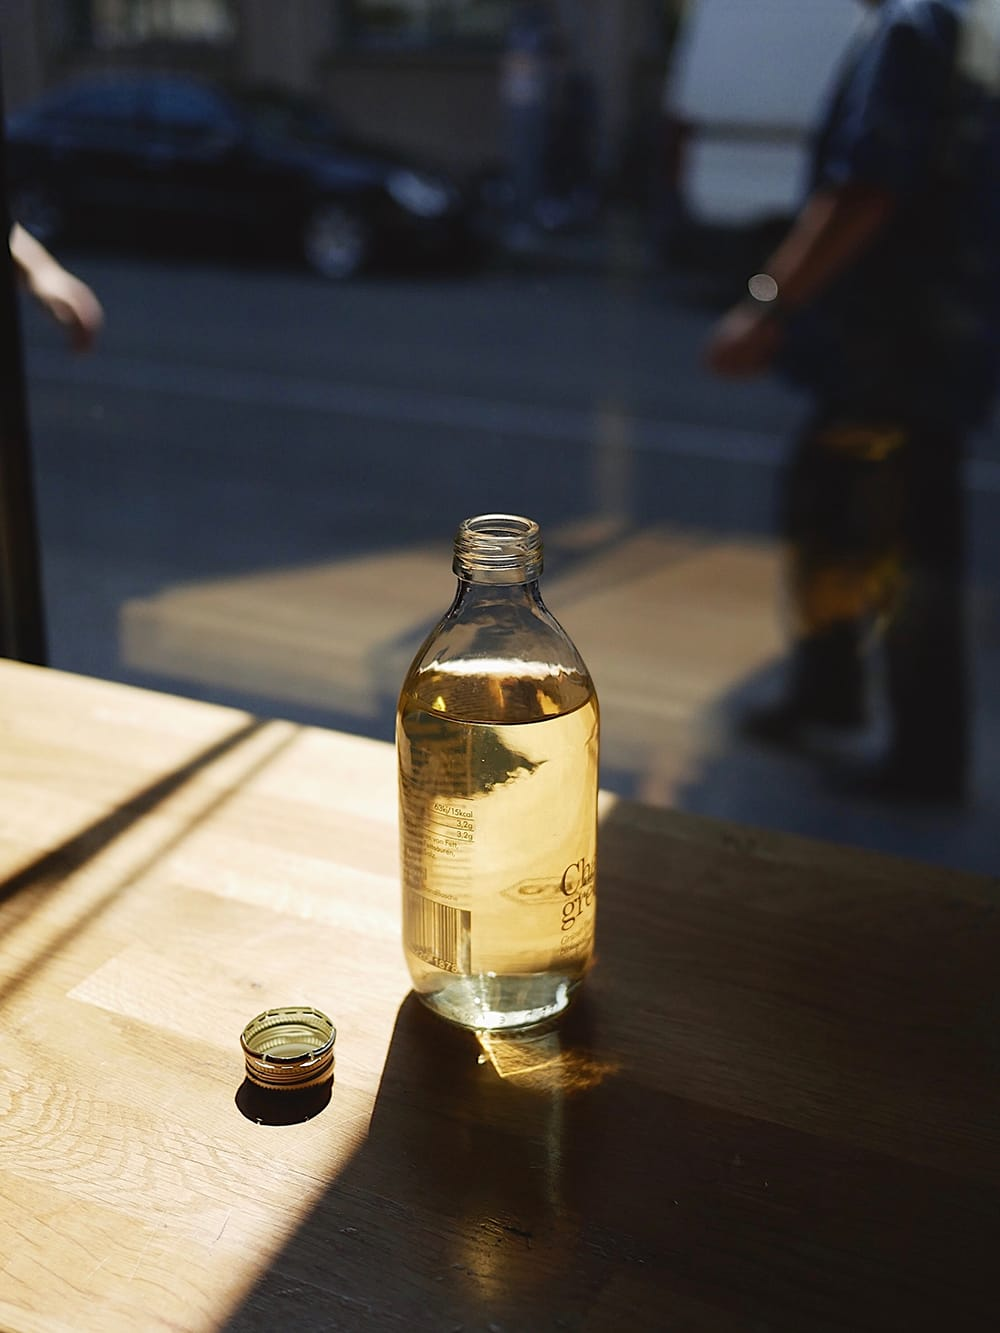 A bottle of tea brew placed on a table by the window in a cafe. Berlin